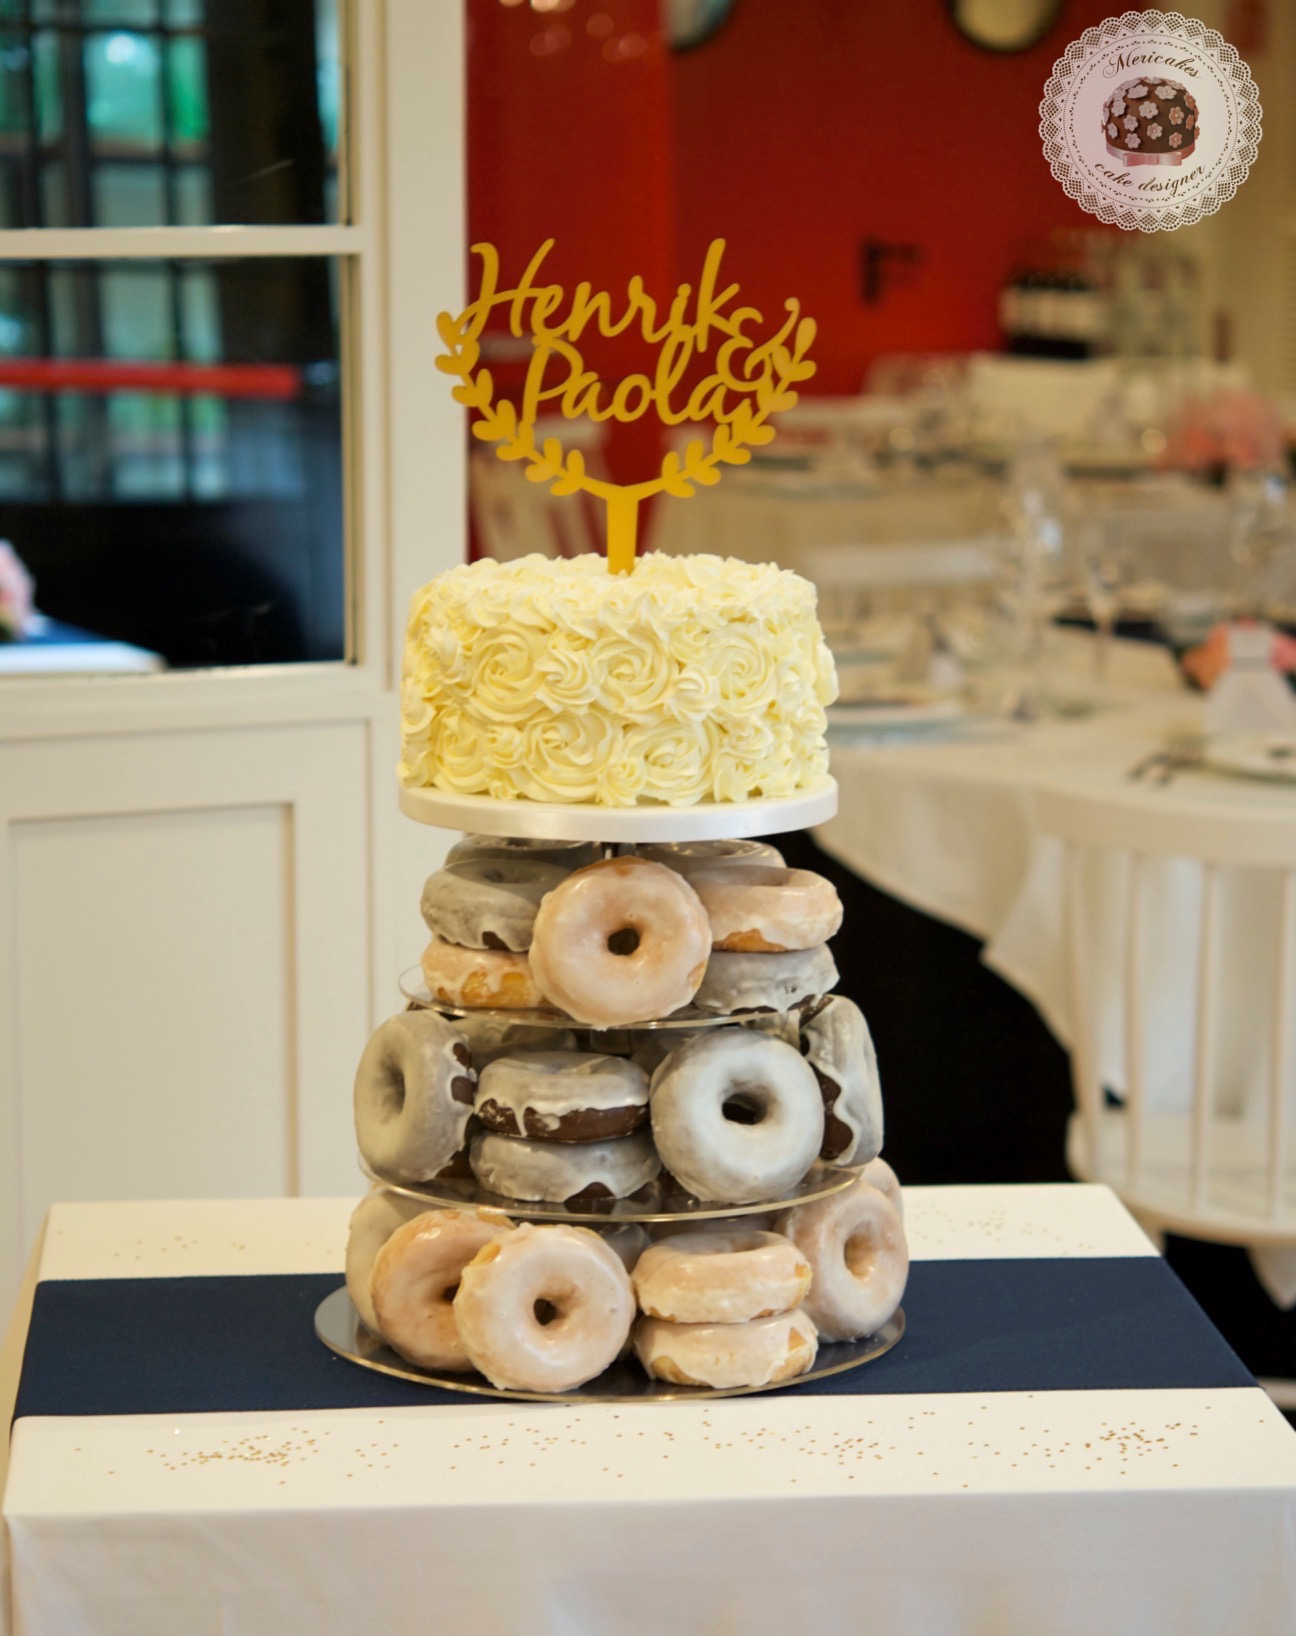 Wedding cake, tarta de boda, spain wedding, doughnuts, doughnuts tower, donuts, berlinas, donas, mericakes, barcelona, wedding stories, cream cake, cake topper, chocolate 8